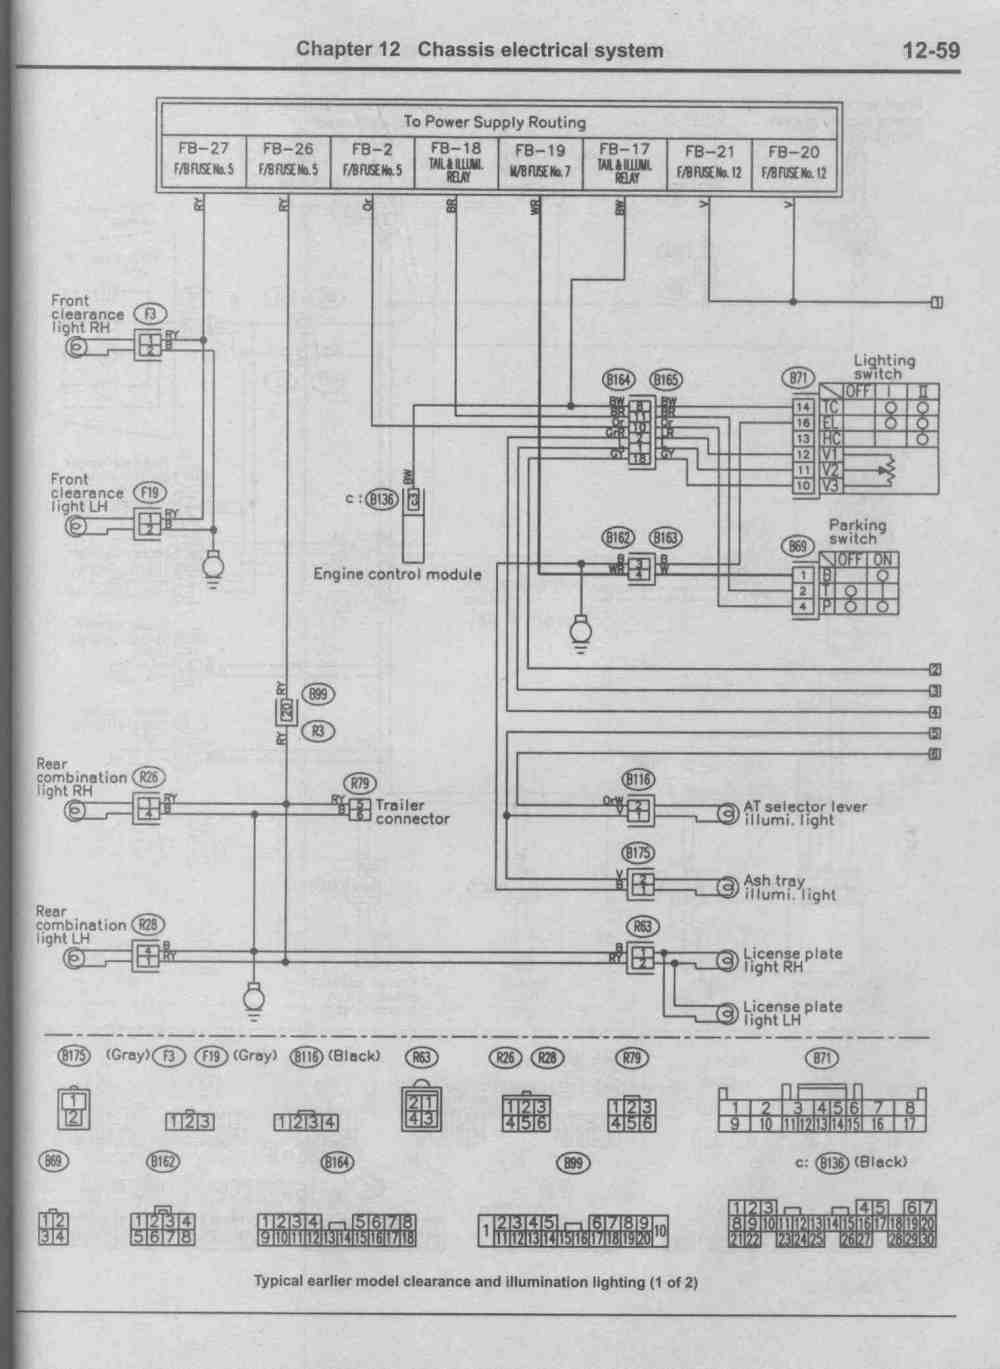 medium resolution of subaru baja wiring harness failure schematic diagram subaru baja wiring harness failure